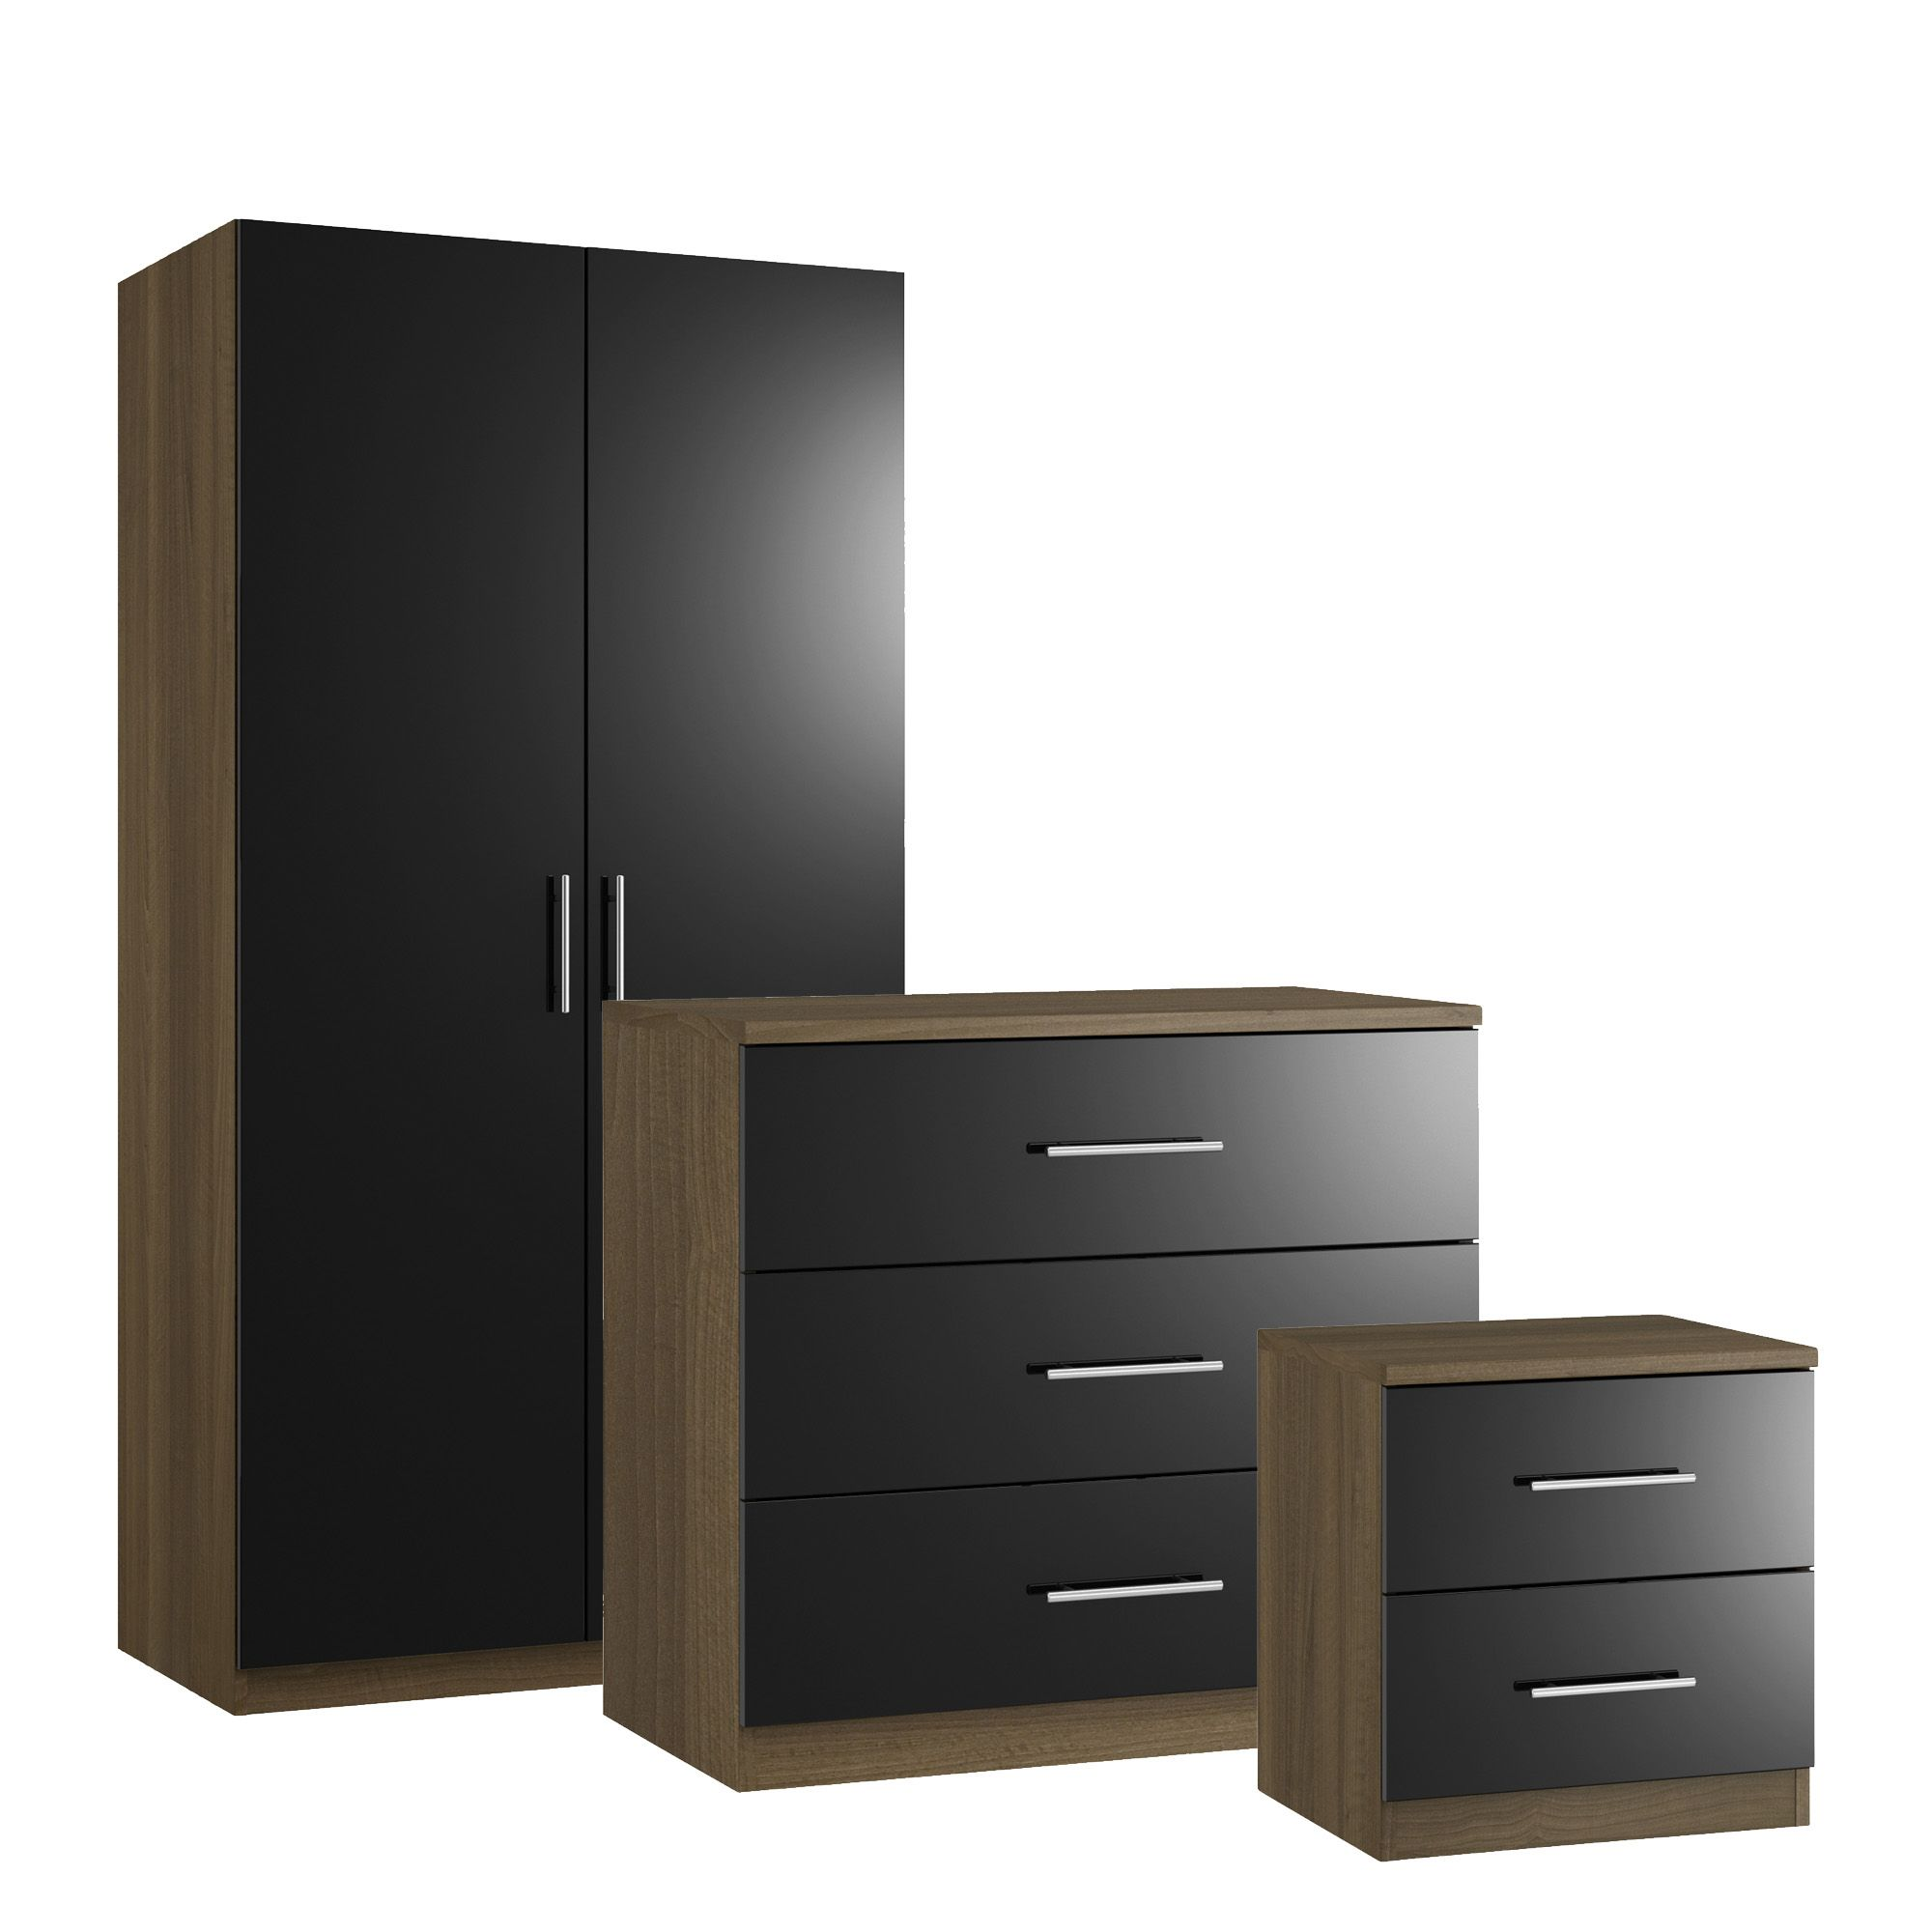 Darwin modern black walnut effect 3 piece bedroom for B q bedroom furniture sets